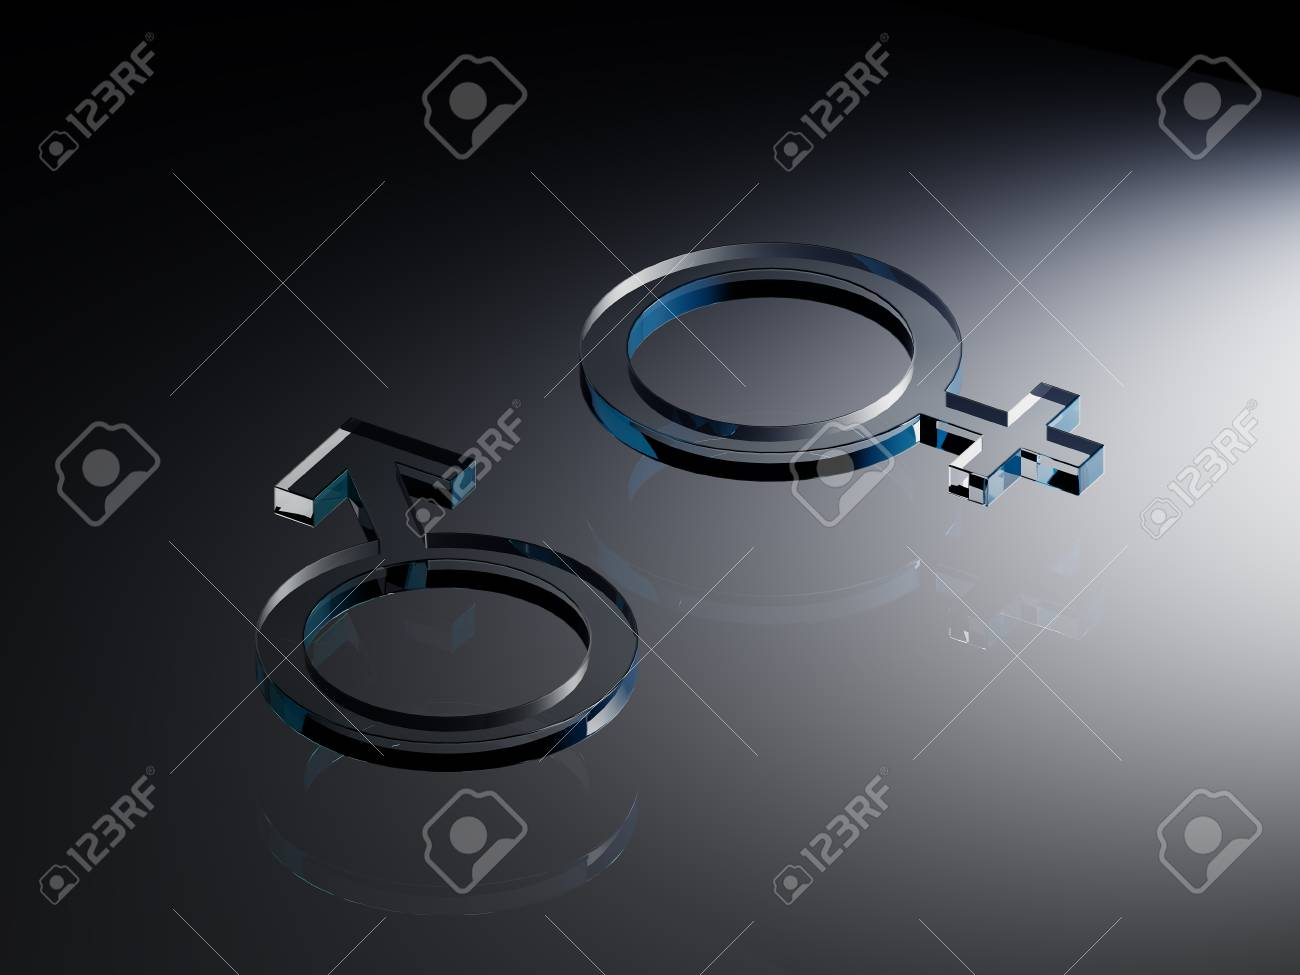 The Symbols Mars And Venus For Man And Woman Rendering Stock Photo